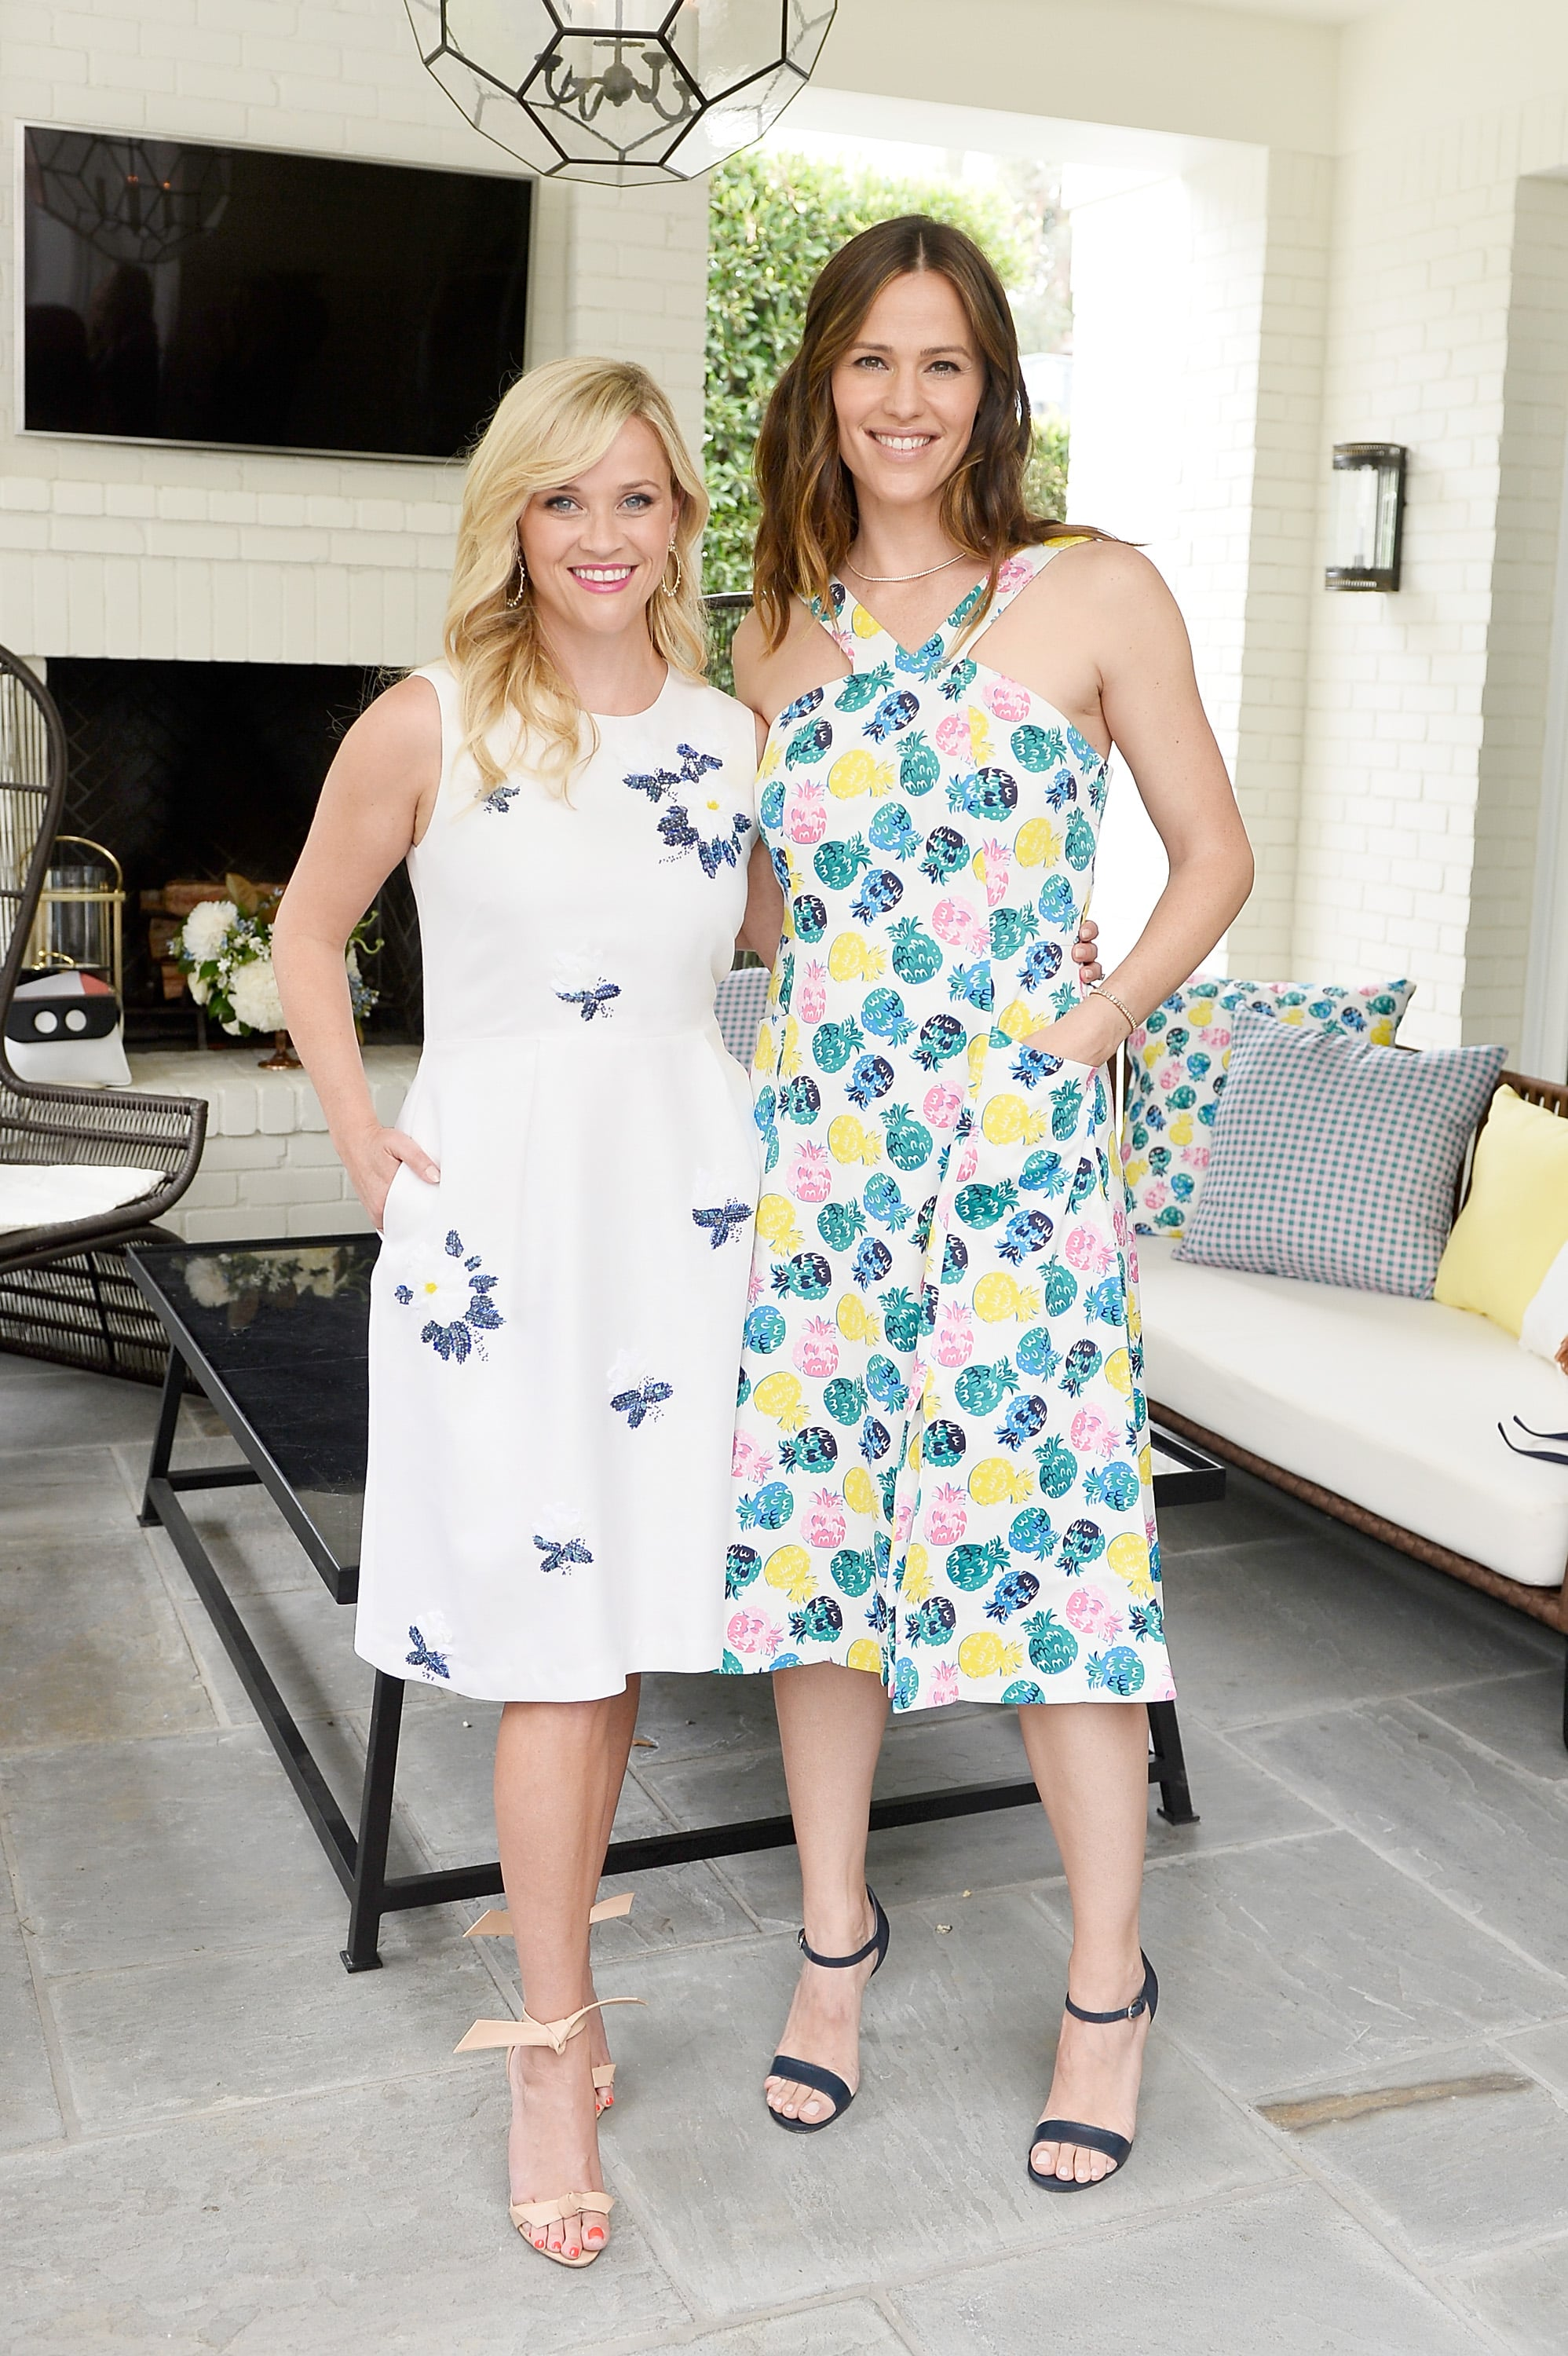 BEVERLY HILLS, CA - JUNE 06:  Reese Witherspoon and Jennifer Garner attend NET-A-PORTER x Draper James Event on June 6, 2017 in Beverly Hills, California.  (Photo by Stefanie Keenan/Getty Images for NET-A-PORTER)